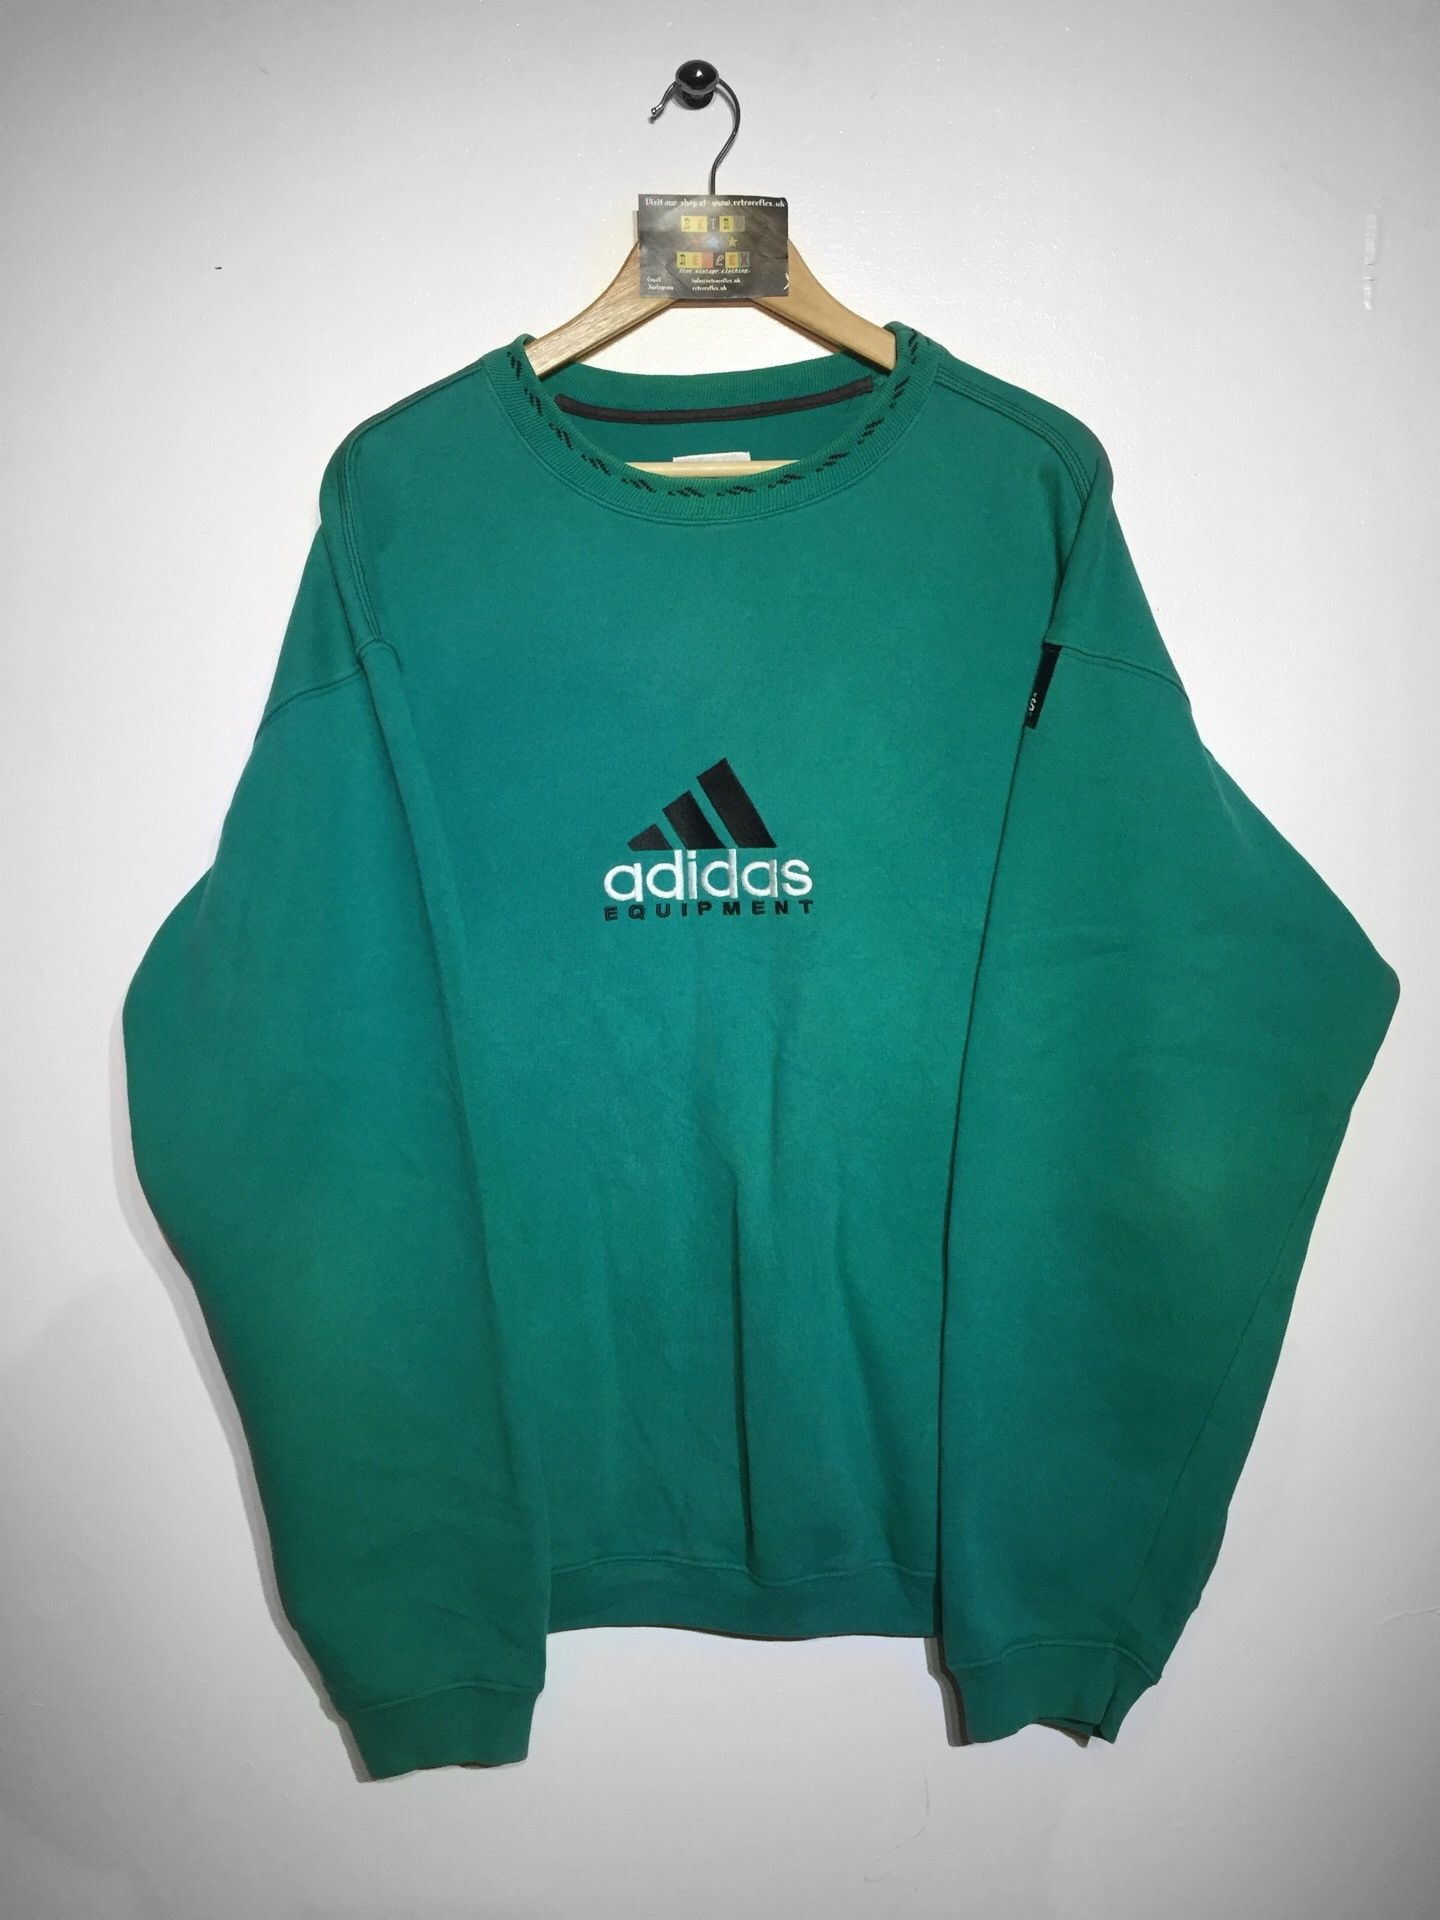 16ba87082dc26 Adidas Equipment Sweatshirt Large (Fits Oversized) – Retro Reflex ...